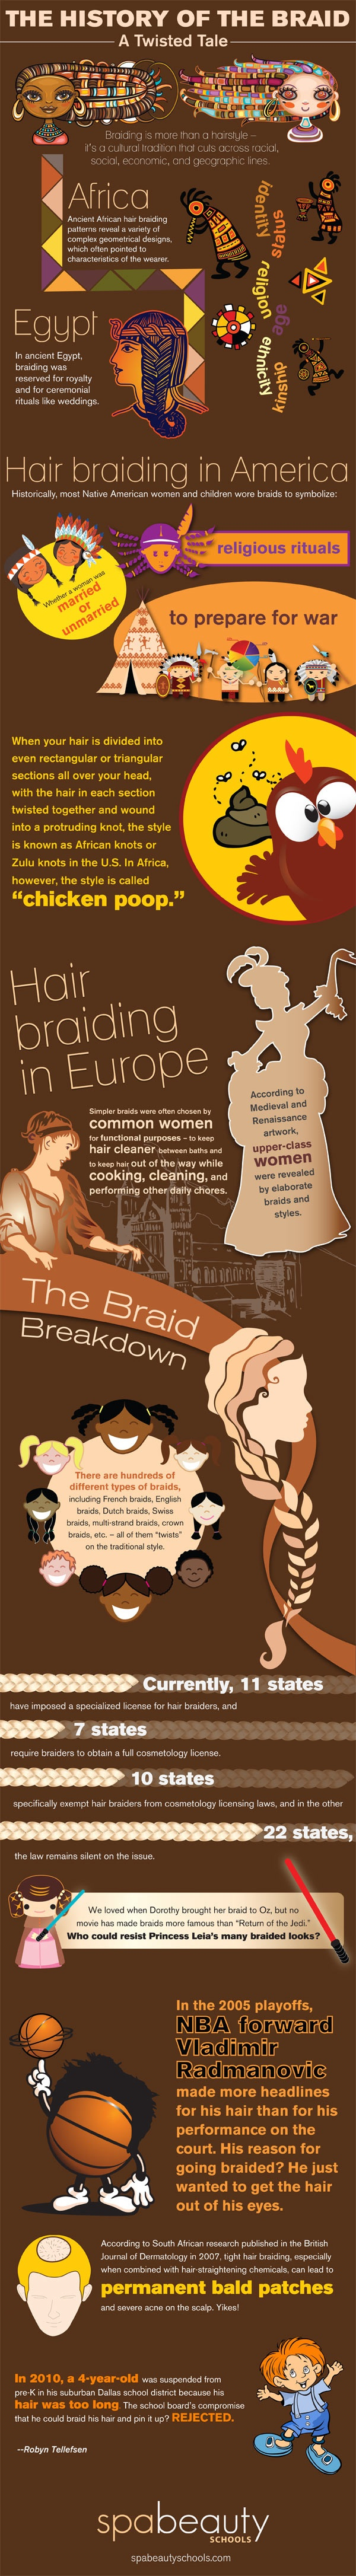 The History of the Braid Infographic